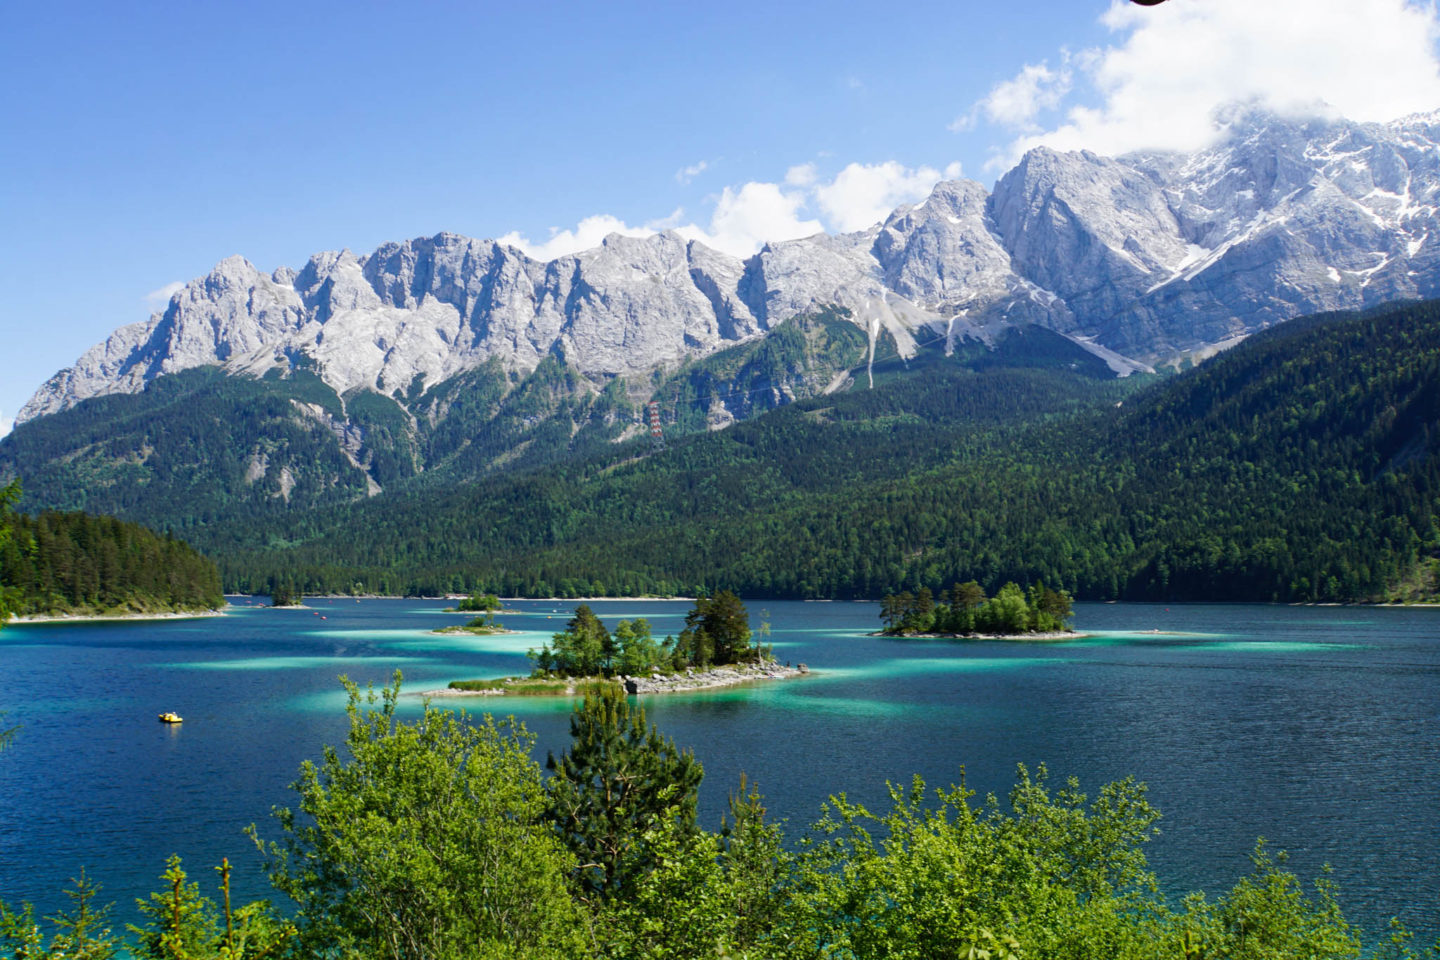 Eibsee View